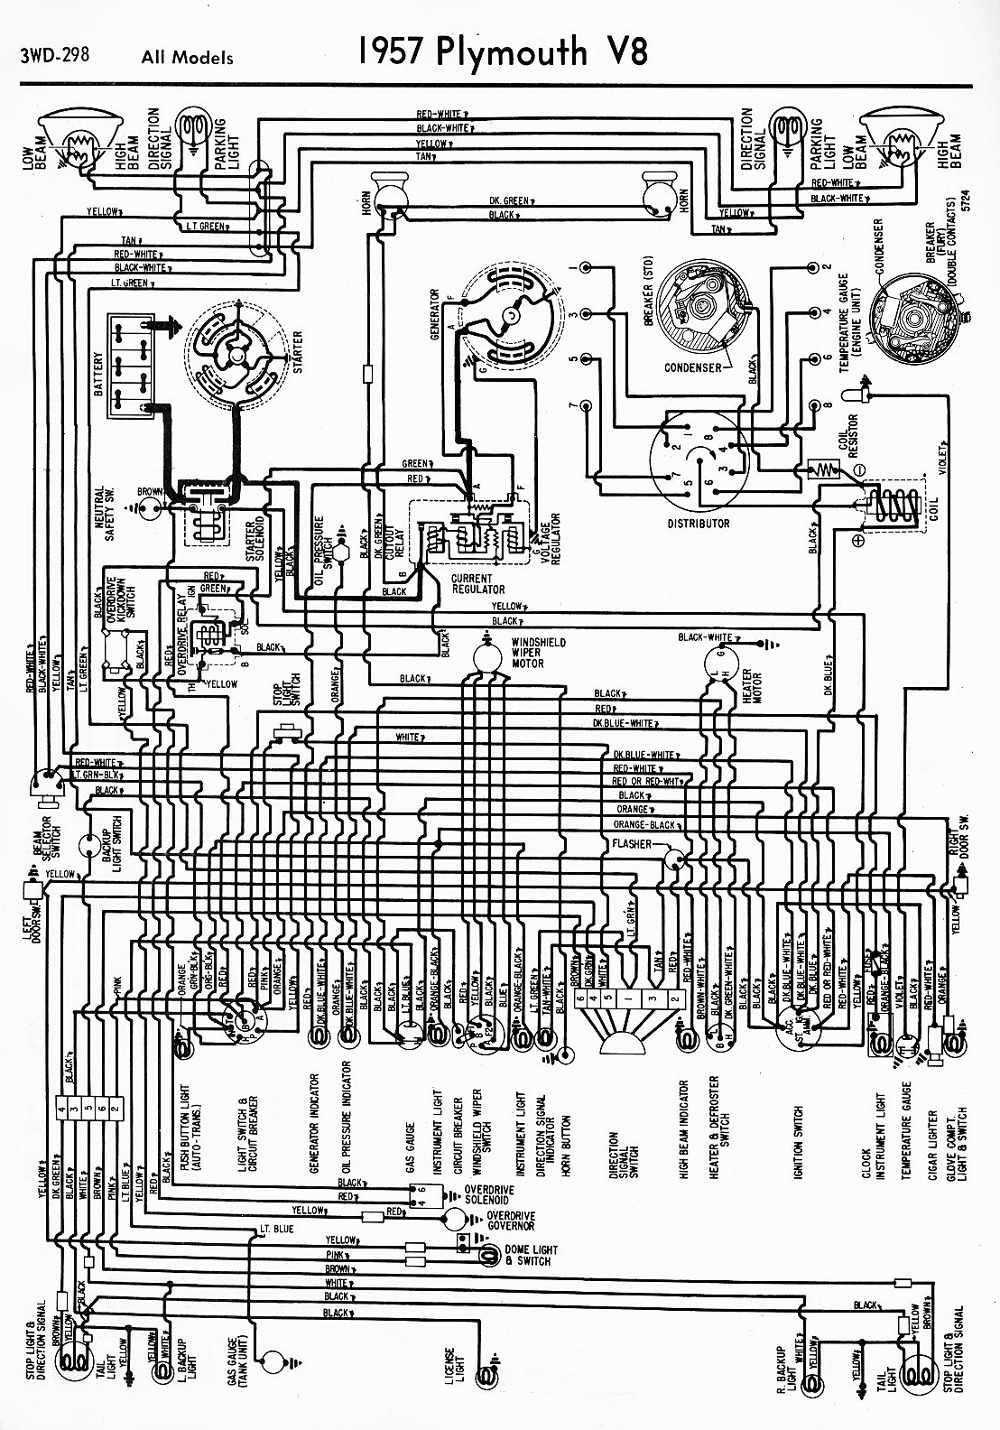 Wiring Diagrams 911 December 2011 1956 Mercury Montclair Diagram Schematic 1957 Plymouth V8 All Models